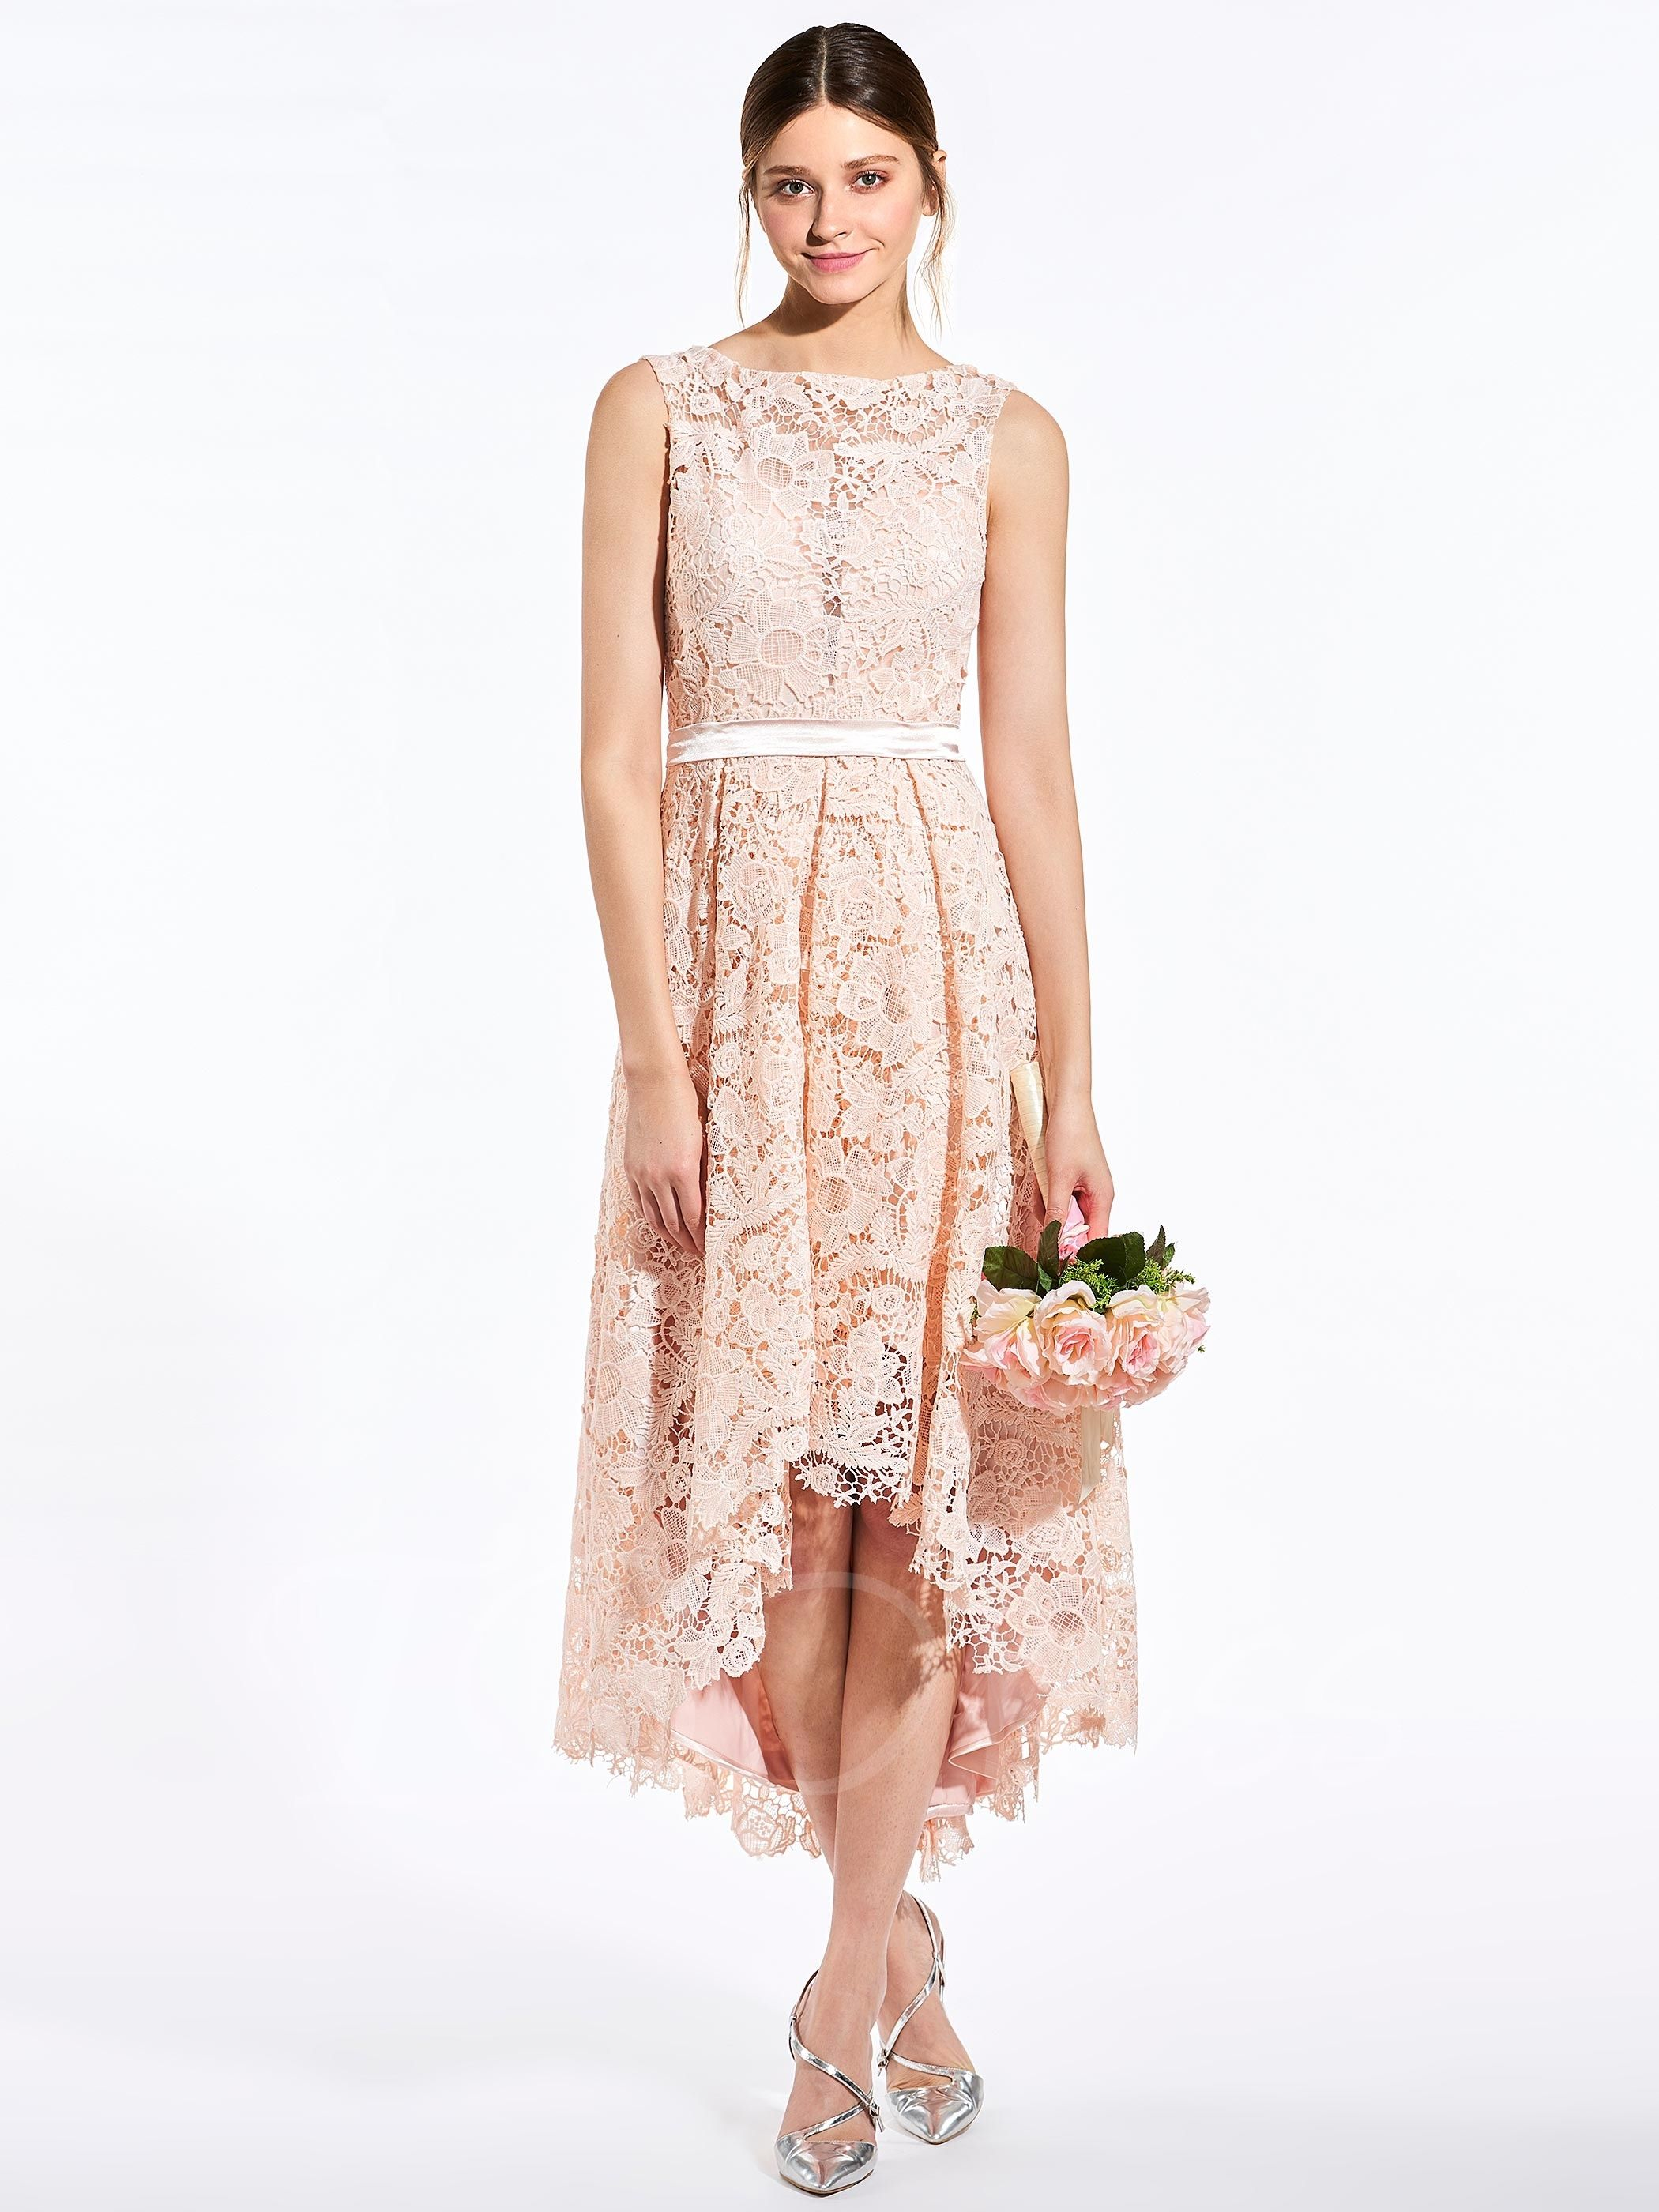 Lace button highlow bridesmaid dress high low bridesmaid dresses